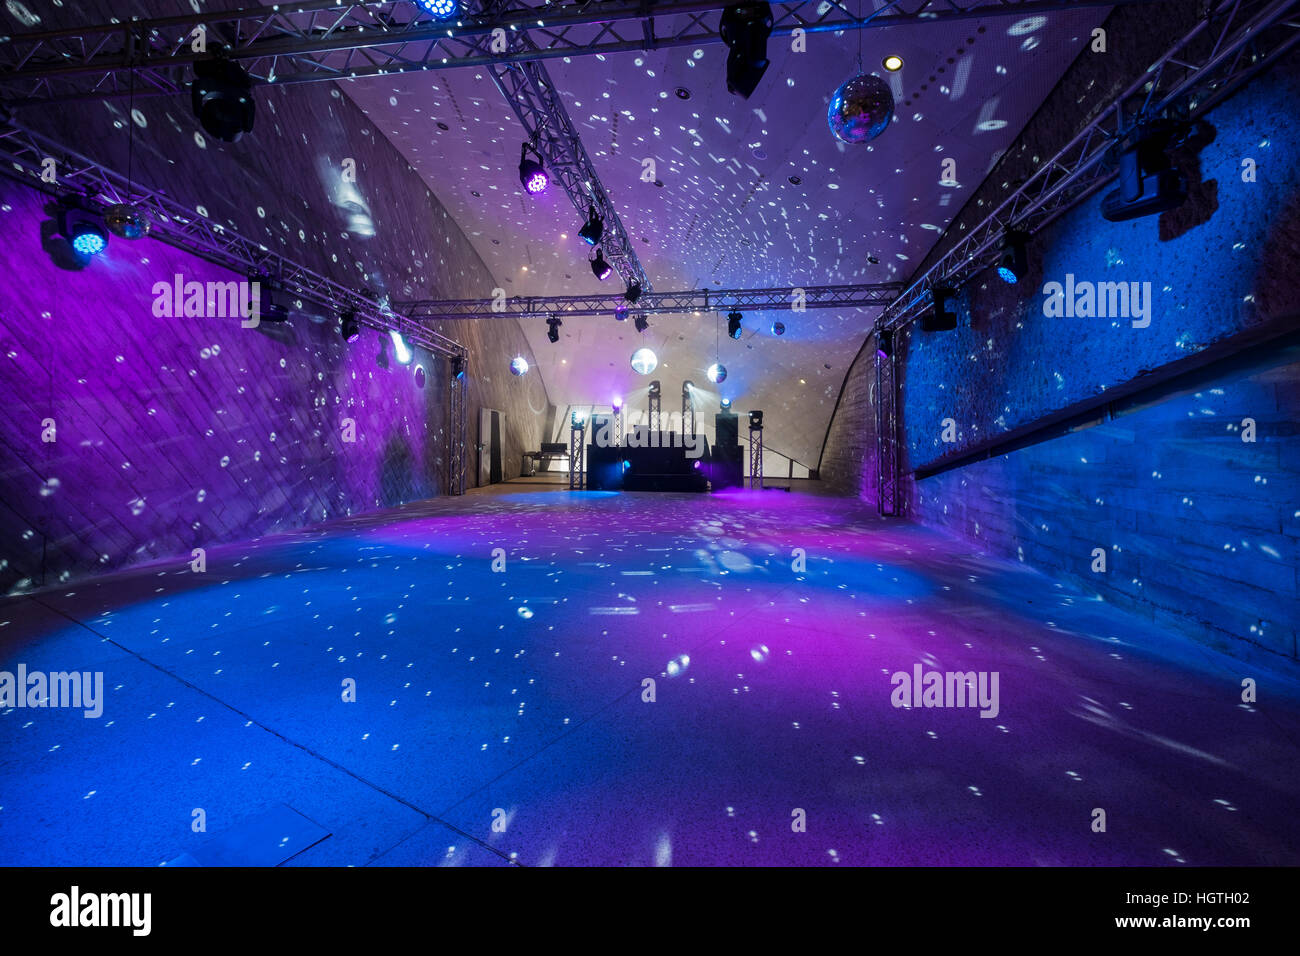 floor led lighting. empty disco dance floor with led lighting and mirror balls c